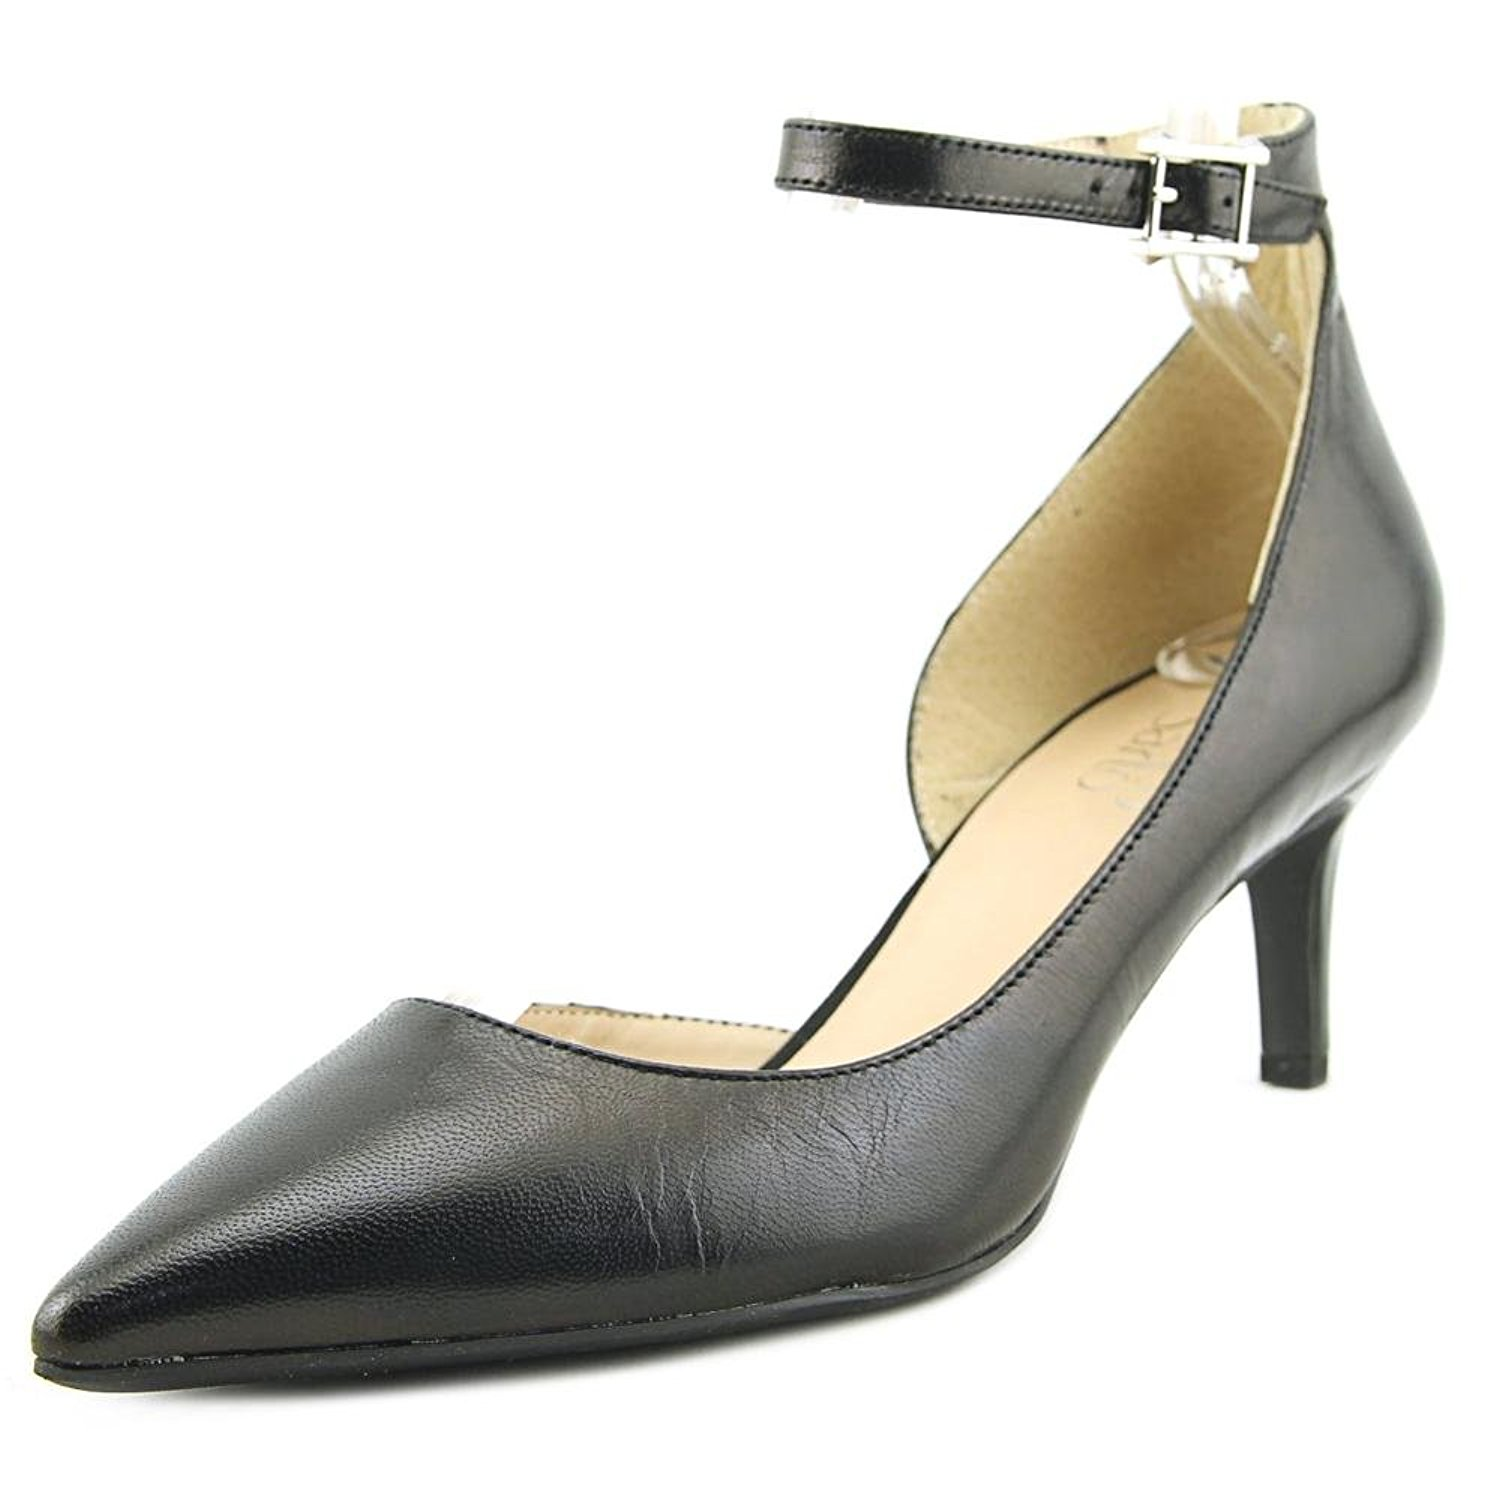 Franco Sarto Womens Dandy Leather Pointed Toe Ankle Wrap Black LE Size 8.0 DFl